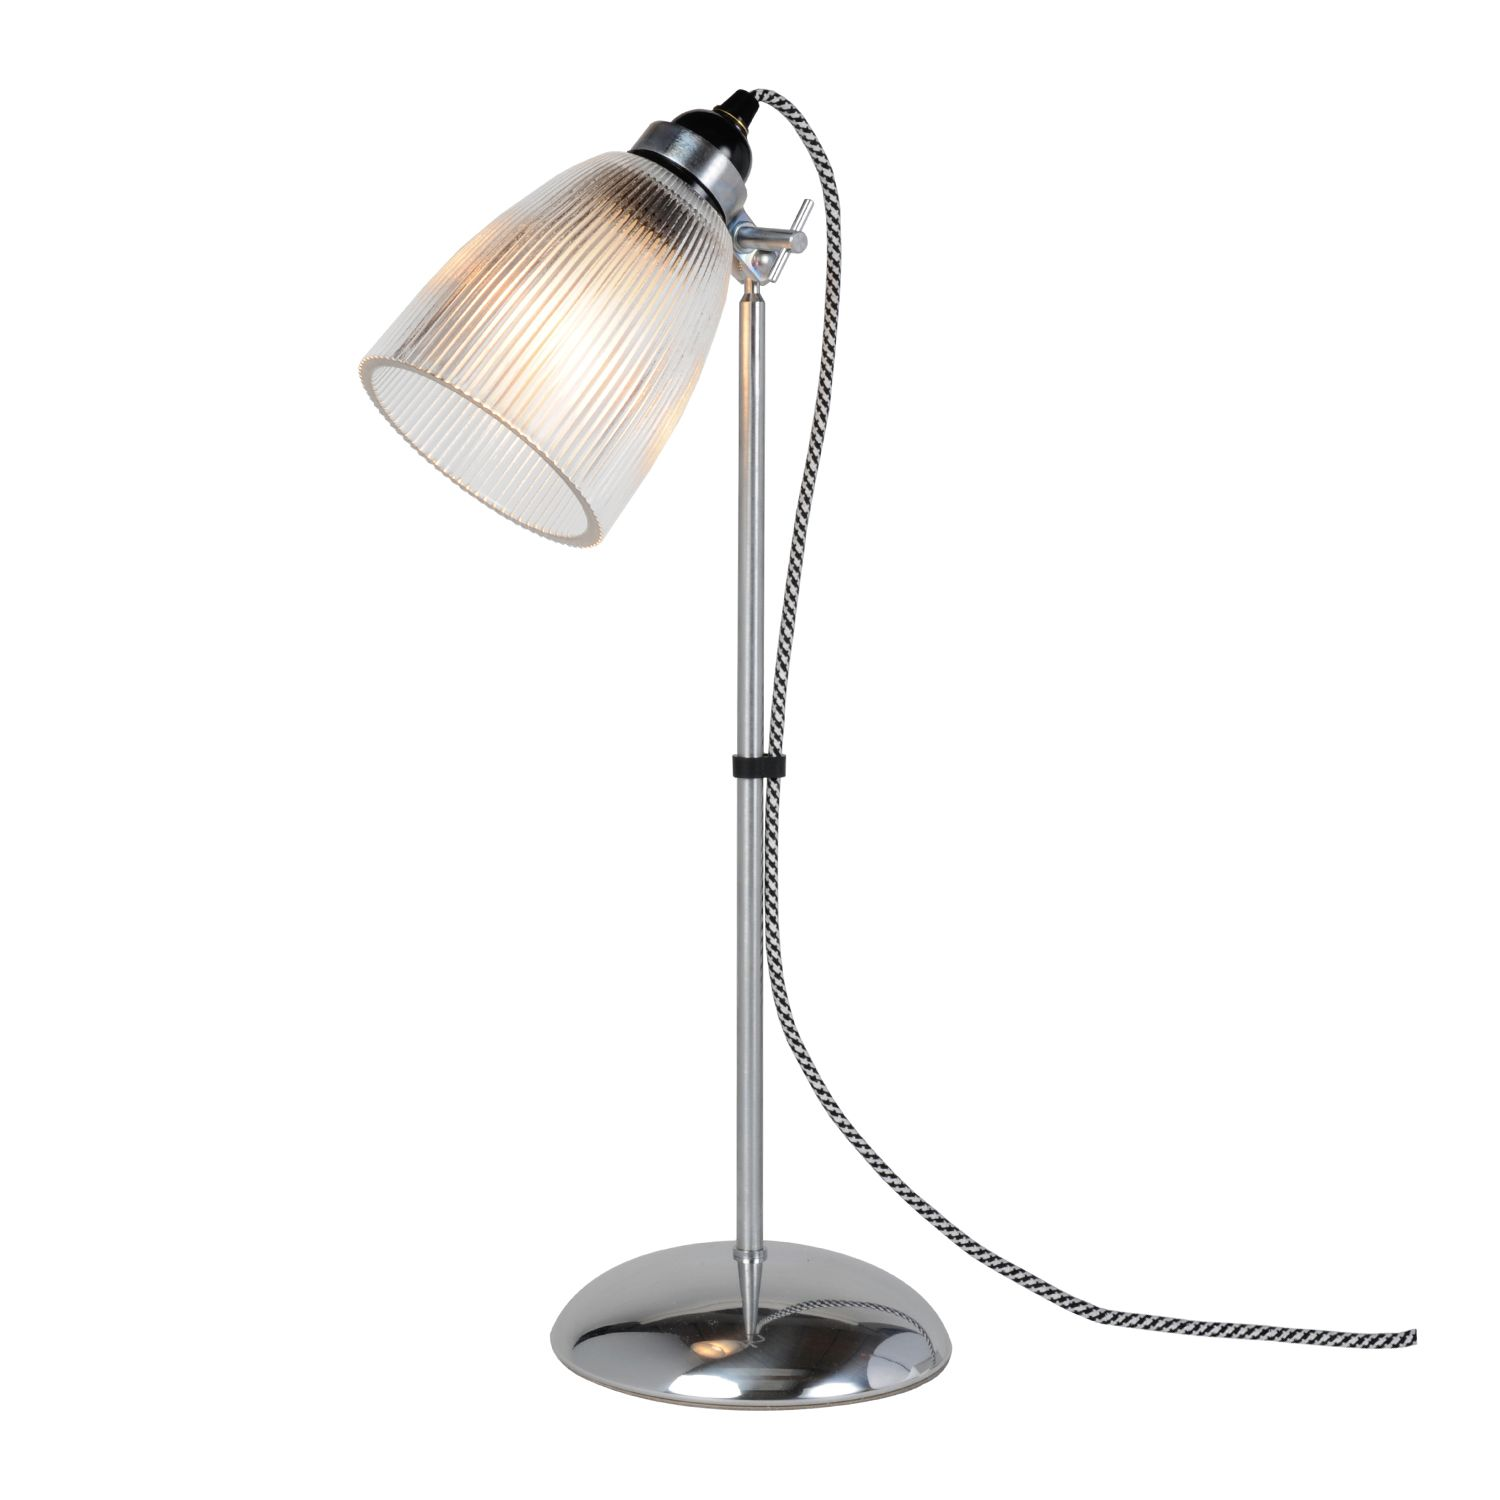 office table lights. Explore Office Desk Lamps, Desks, And More! Table Lights D